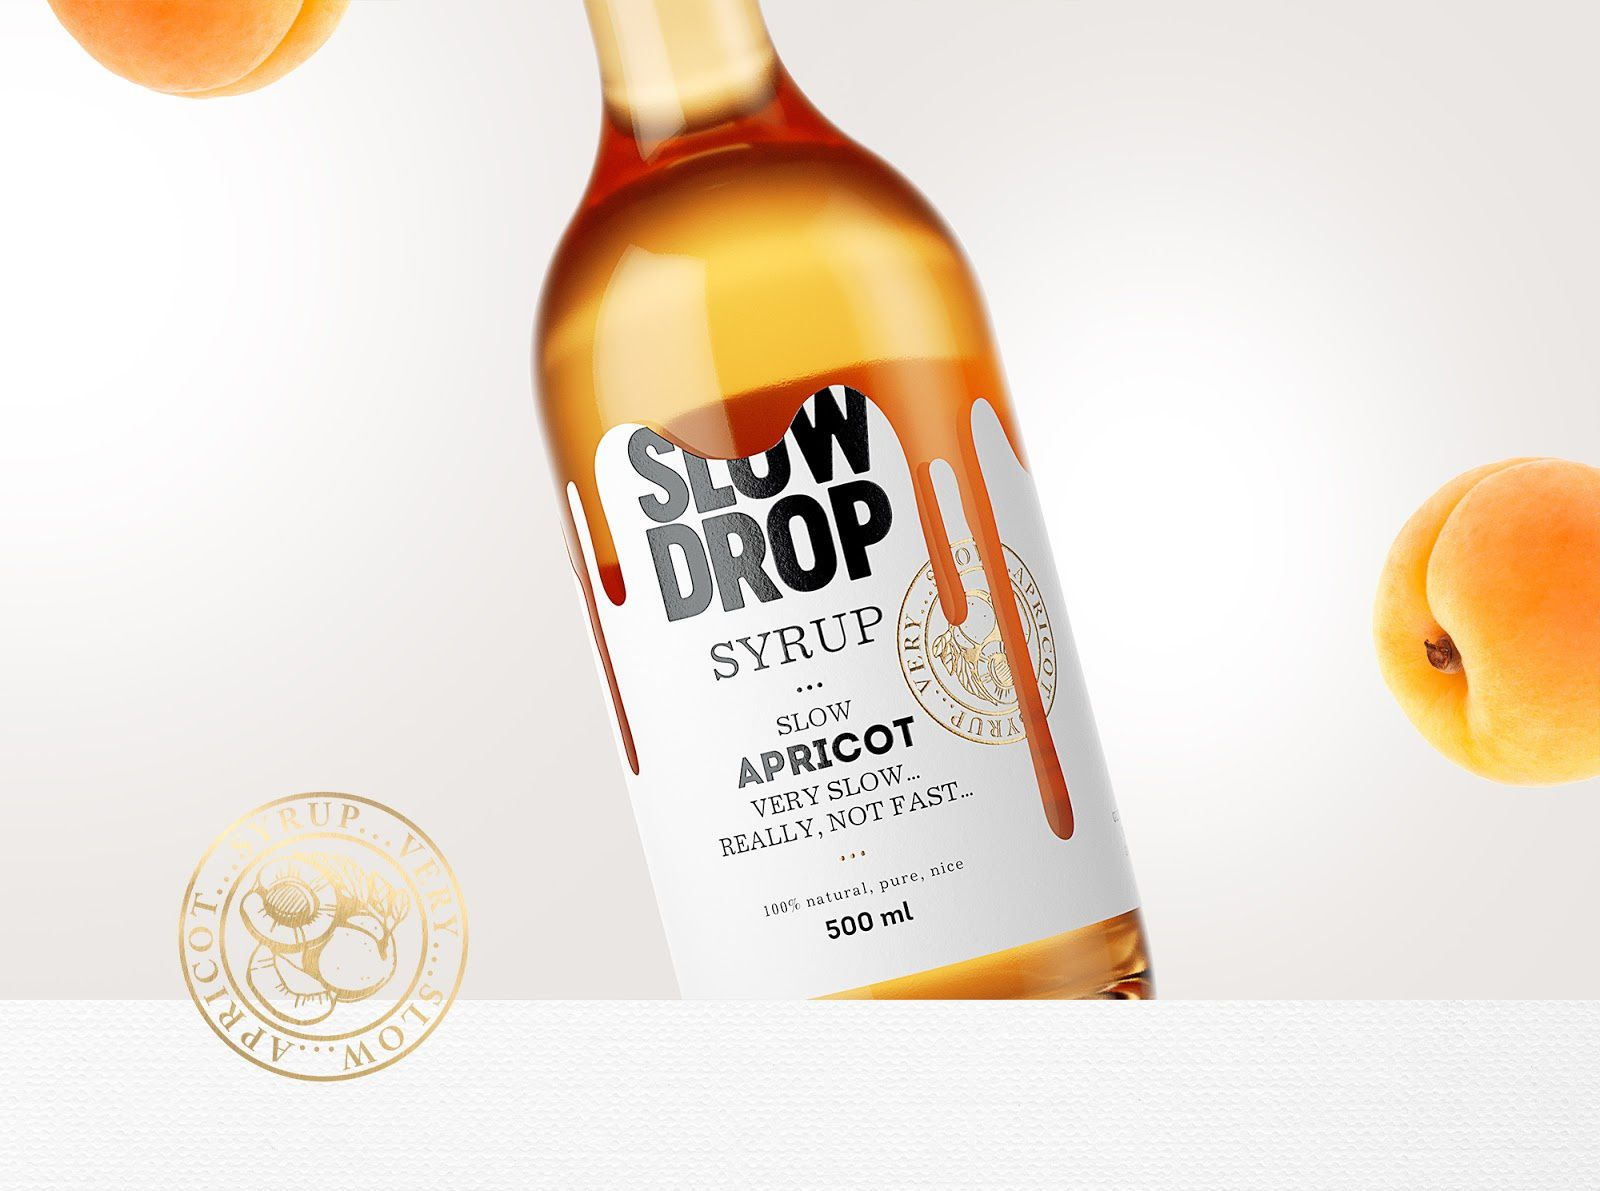 Slow Drop (sirops pour cocktails) I Design : Stas Neretin, Moscou, Russie (mars 2017)